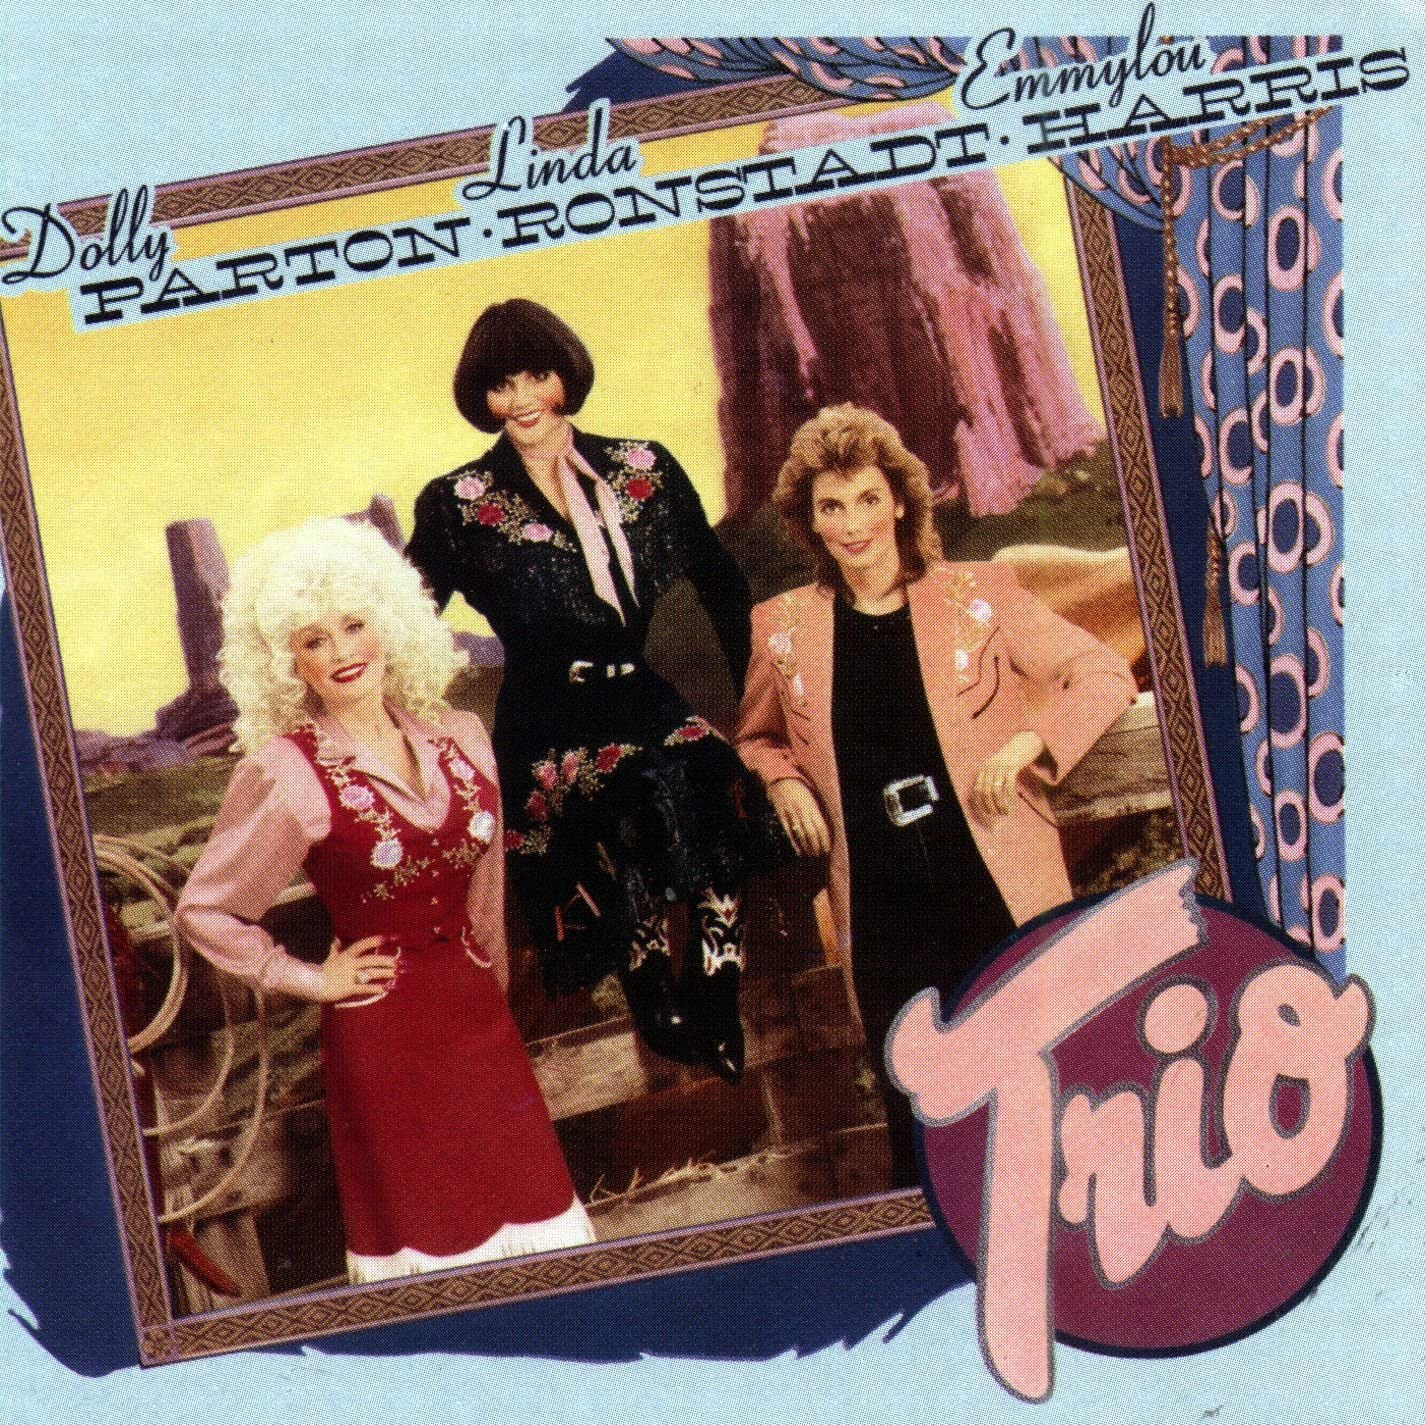 Parton, Dolly, Linda Ronstadt & Emmylou Harris/Trio [LP]